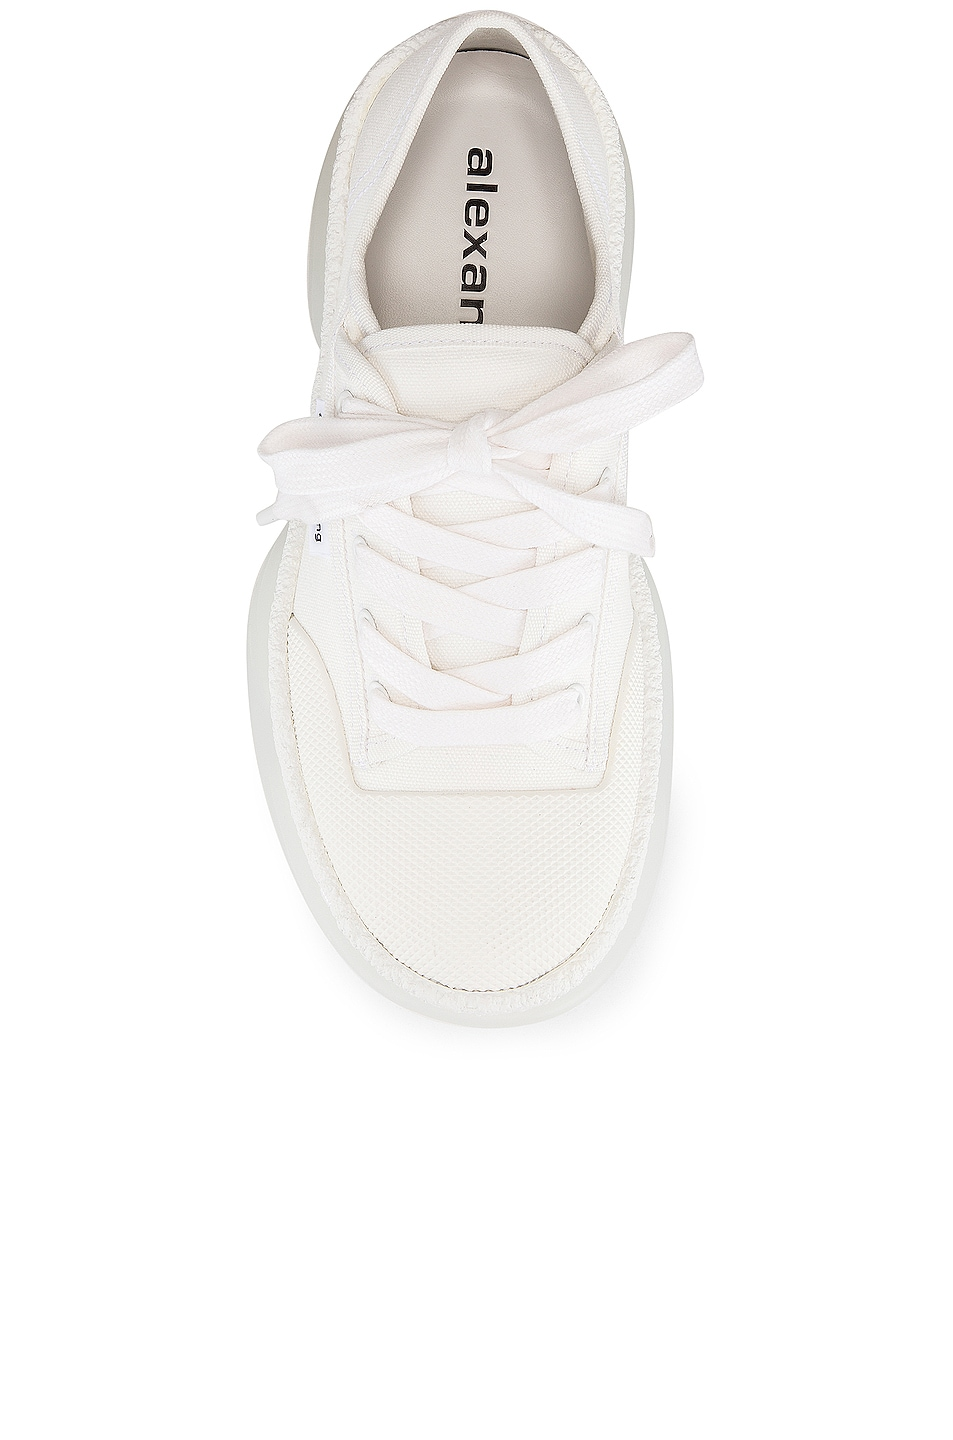 Image 4 of Alexander Wang A1 Low Top Sneaker in White